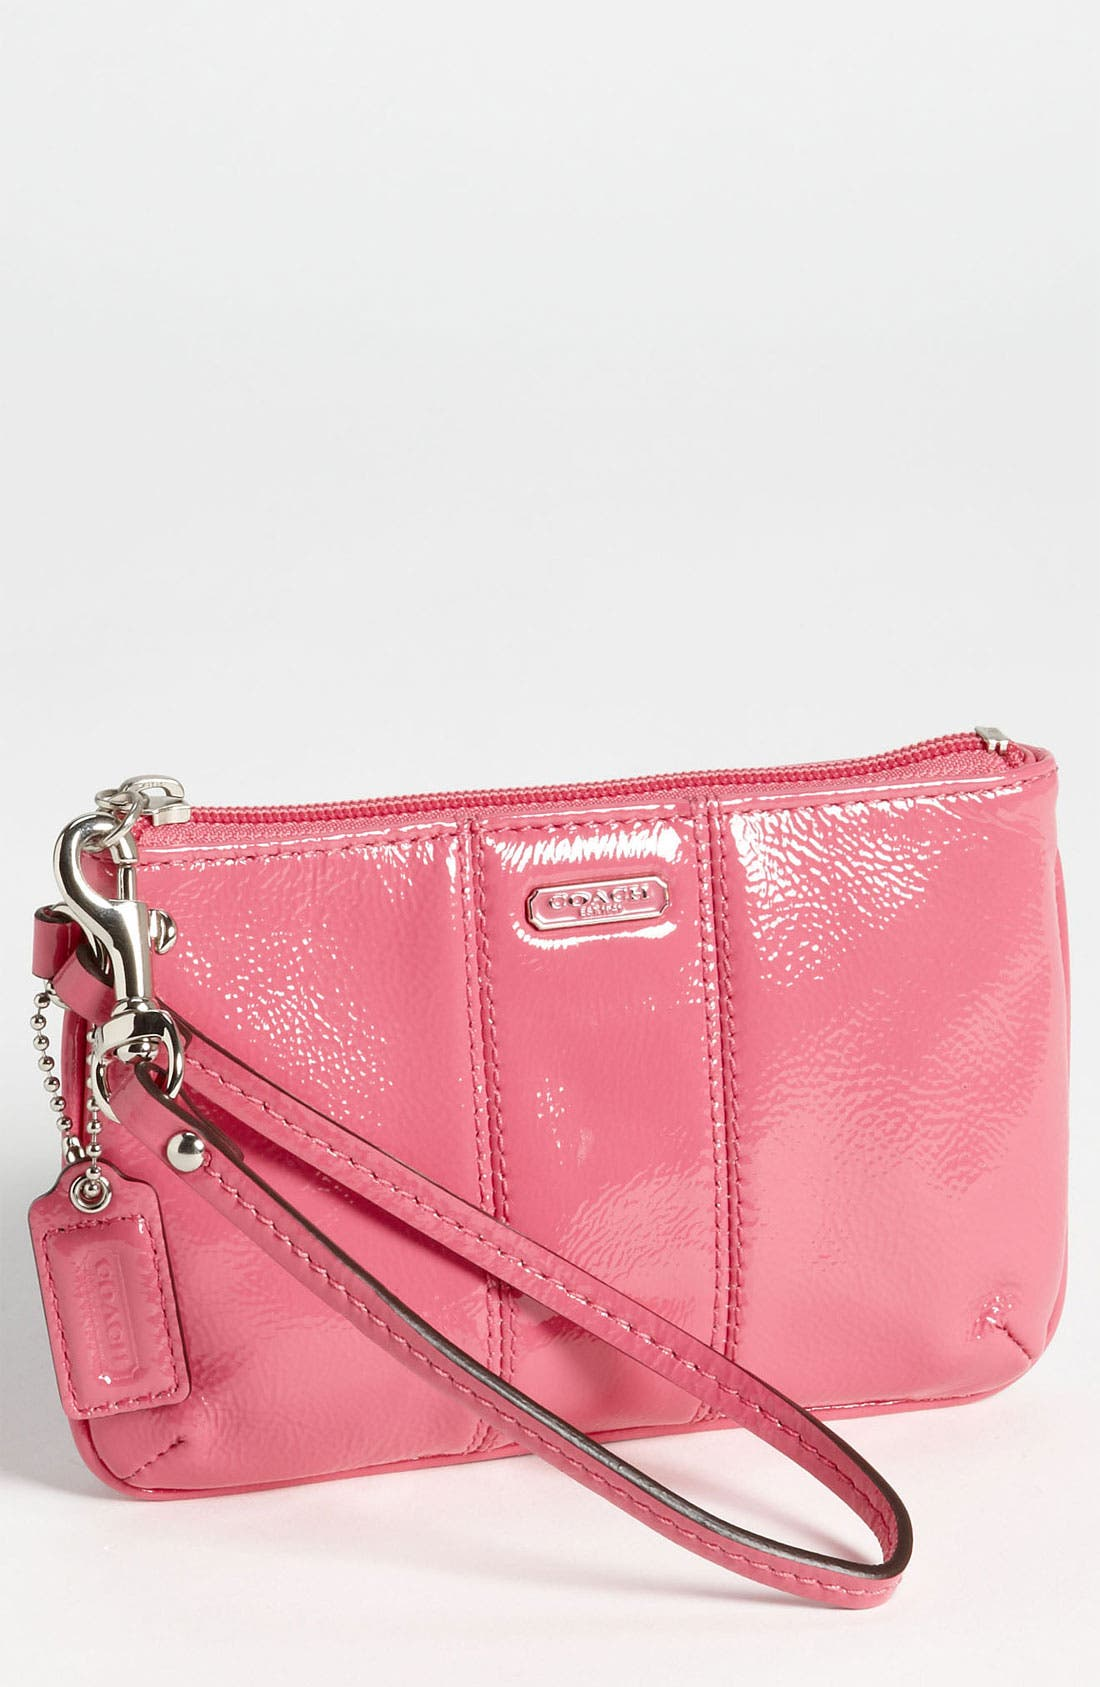 Main Image - COACH 'Small' Patent Leather Wristlet